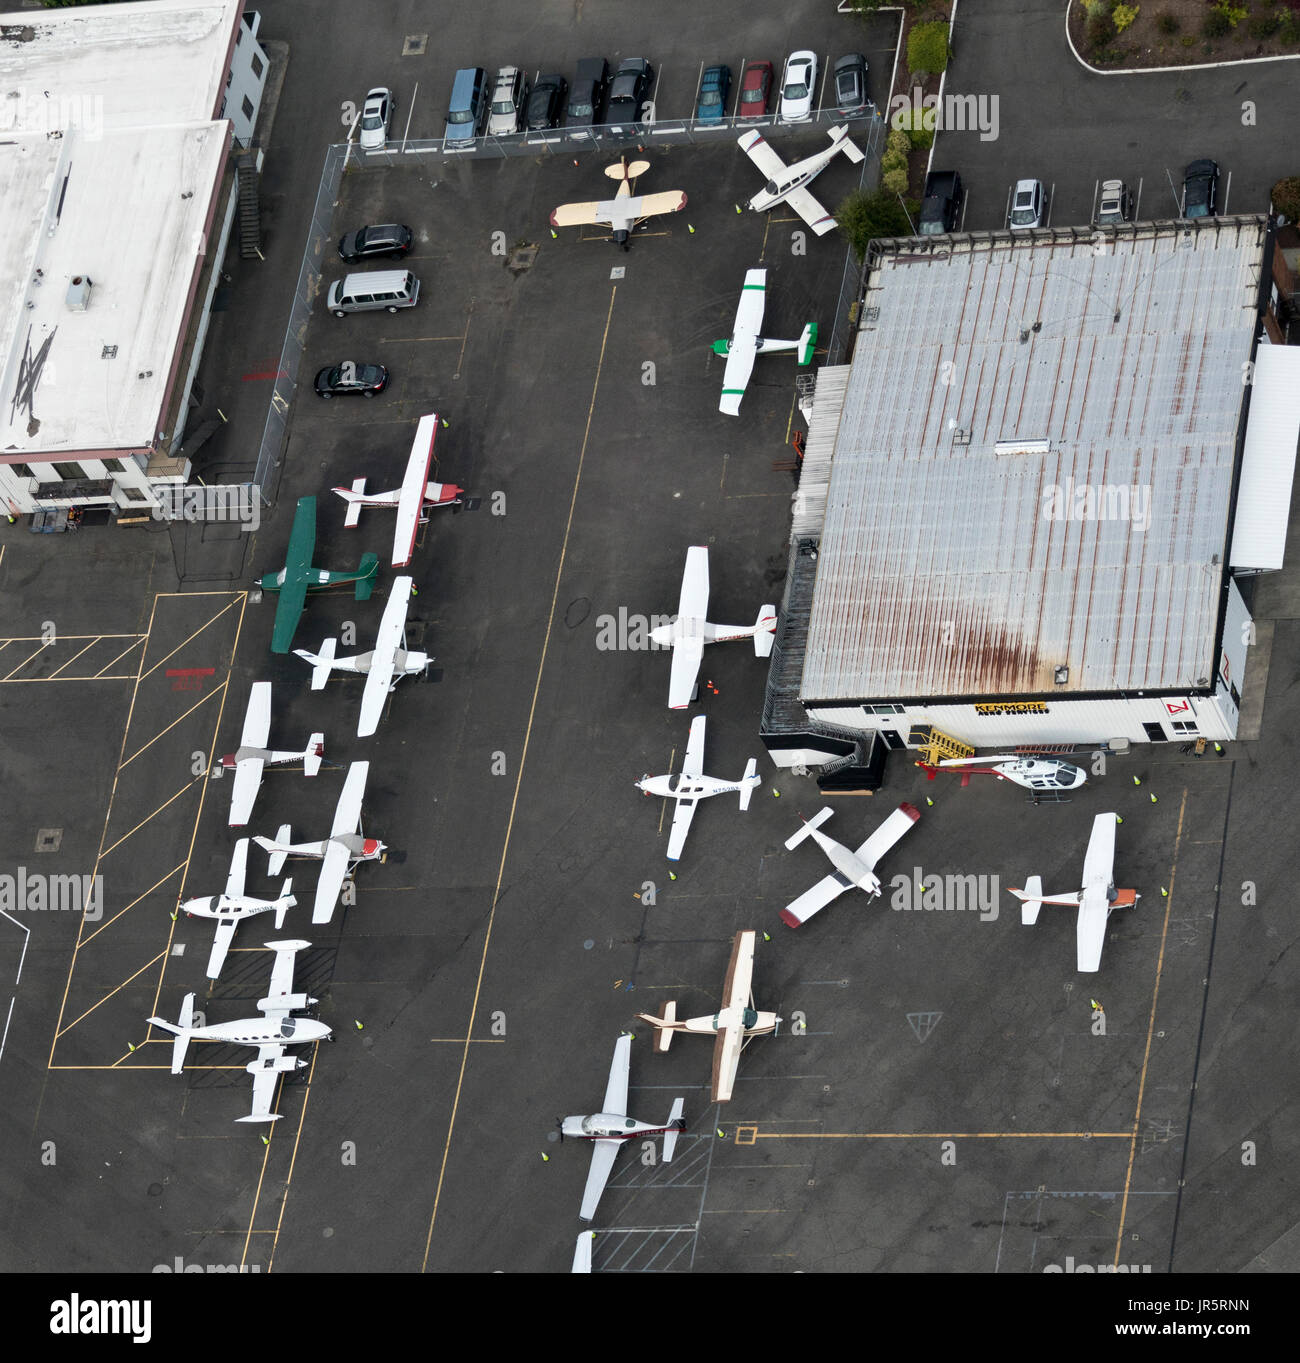 aerial view of private propellor planes at Boeing Field, Seattle, Washington State, USA - Stock Image